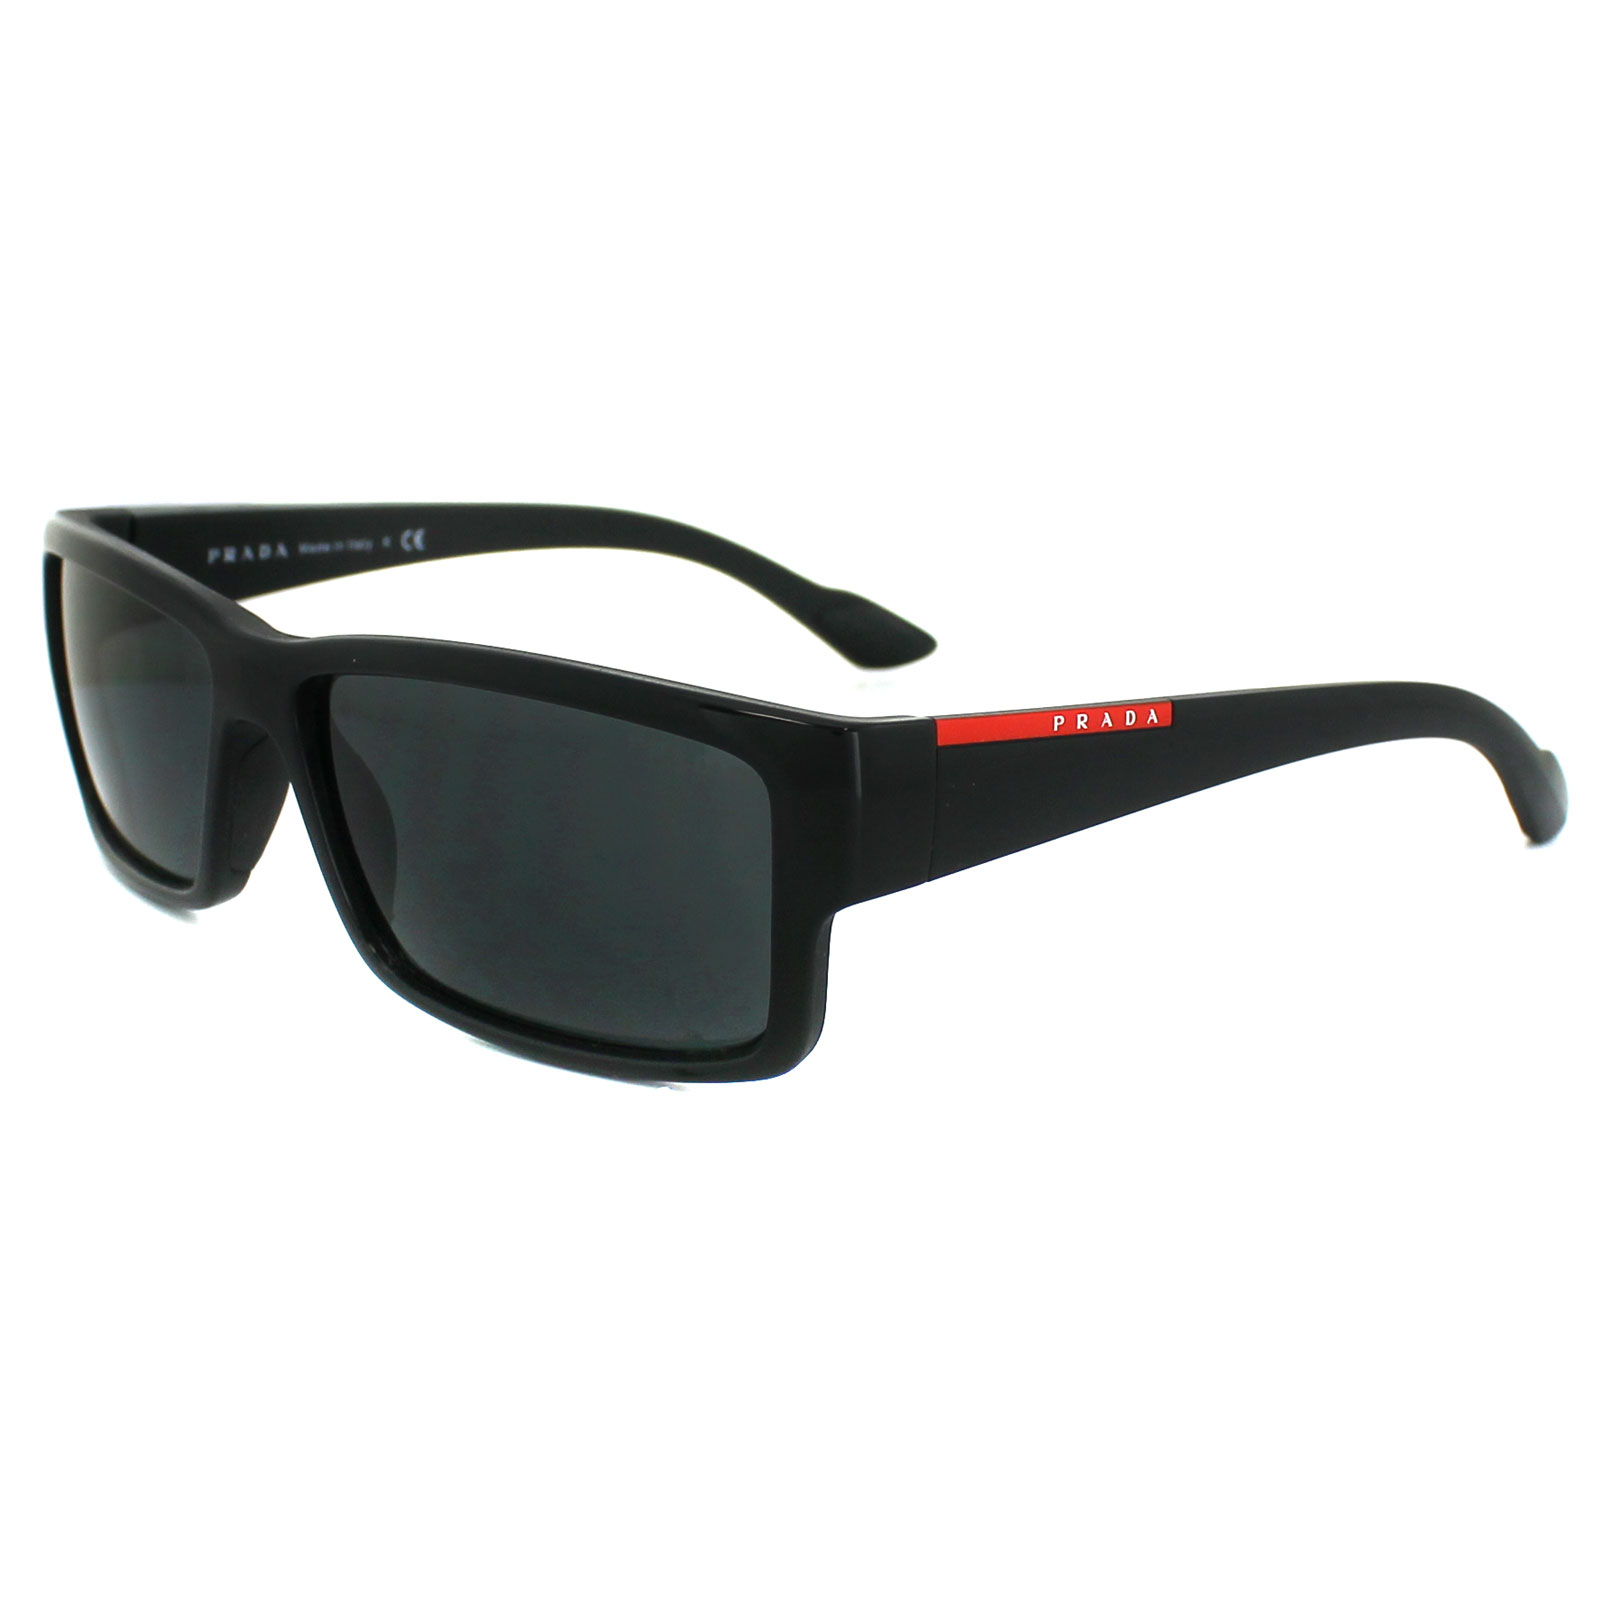 prada sport sunglasses 05os 1ab1a1 black grey. Black Bedroom Furniture Sets. Home Design Ideas